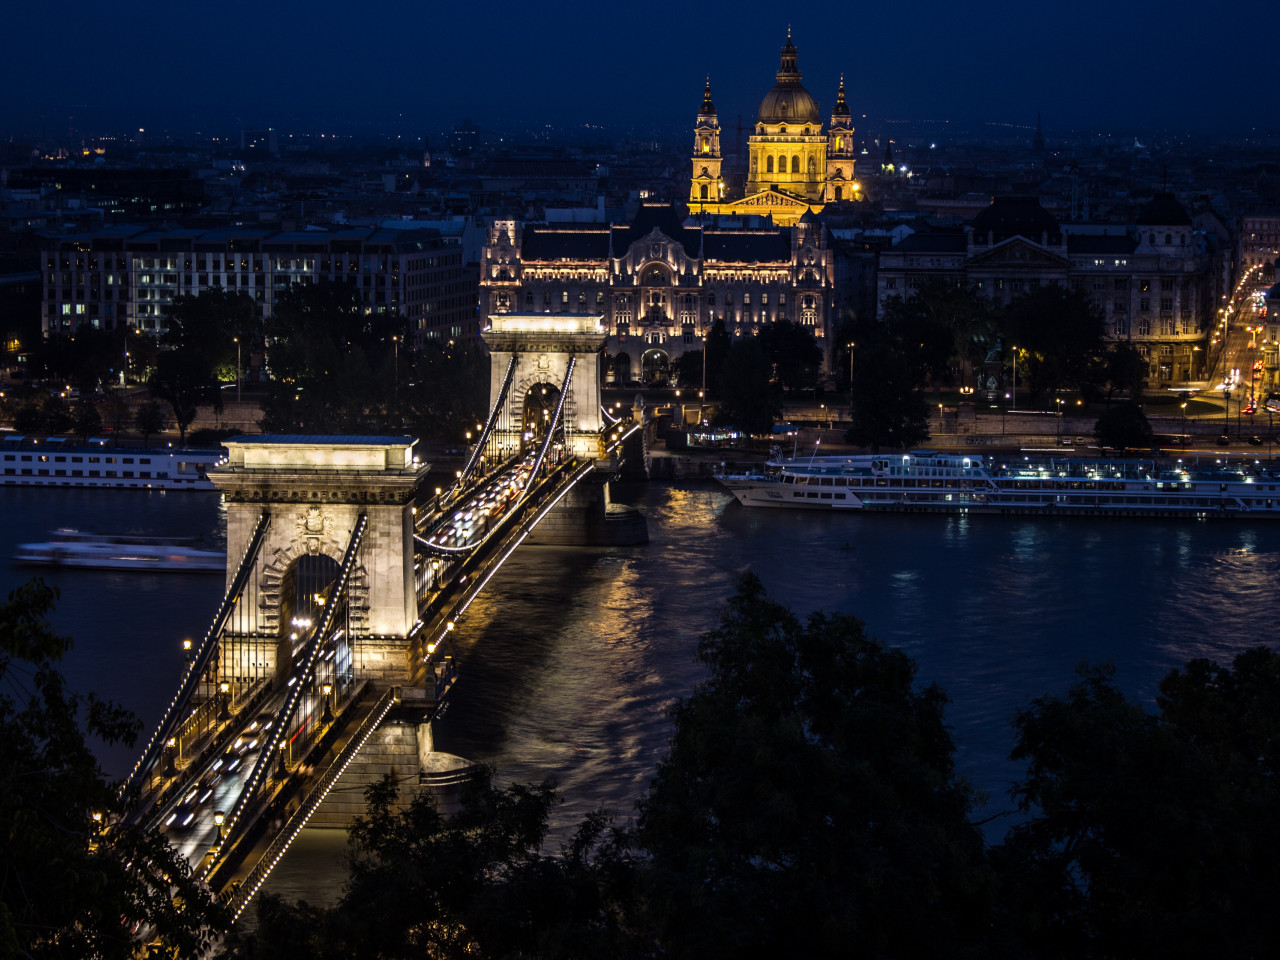 Budapest by Night wallpaper 1280x960